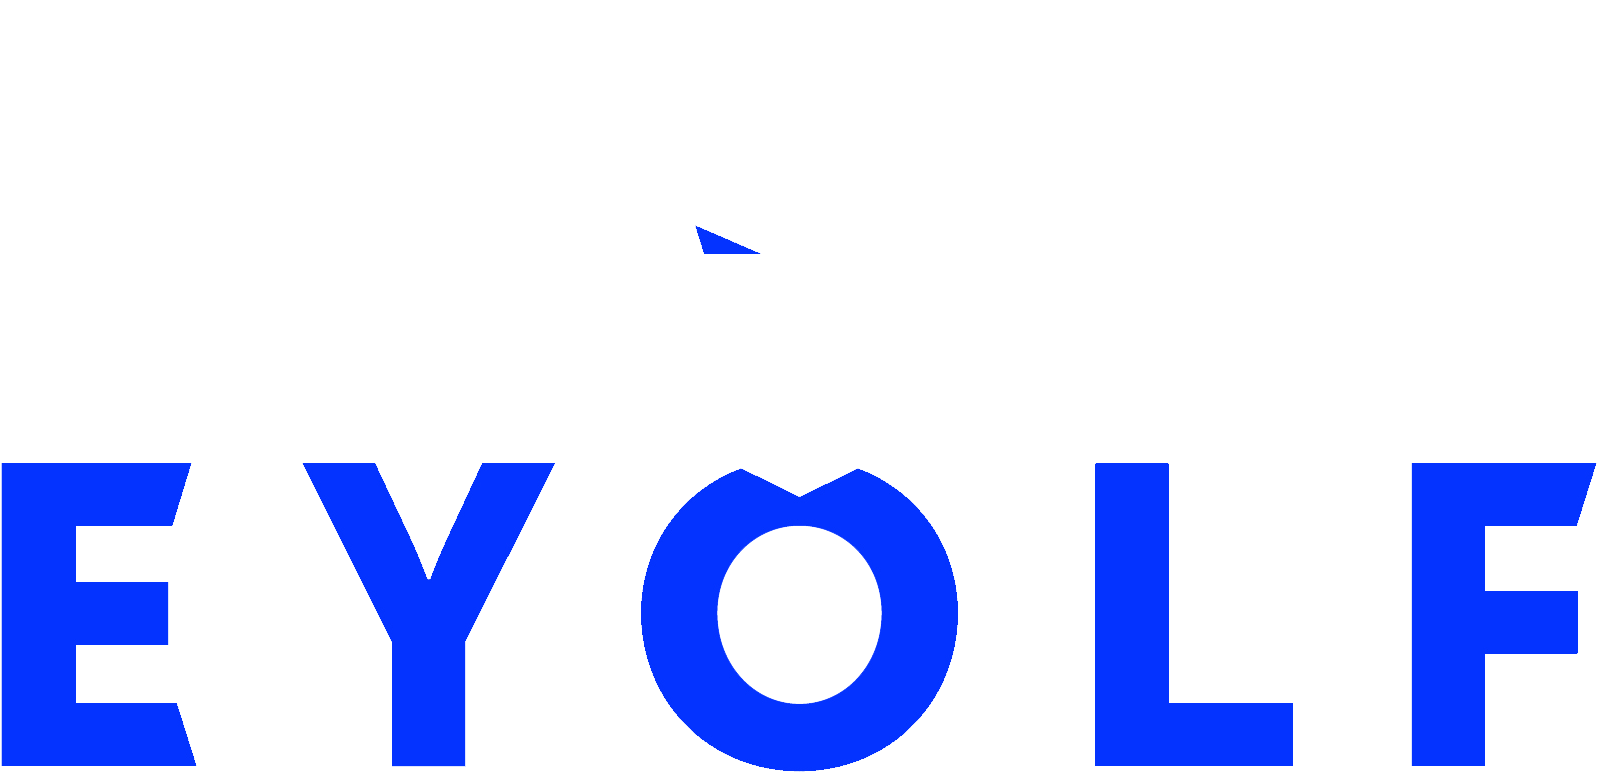 EYOLF logo without dark shading